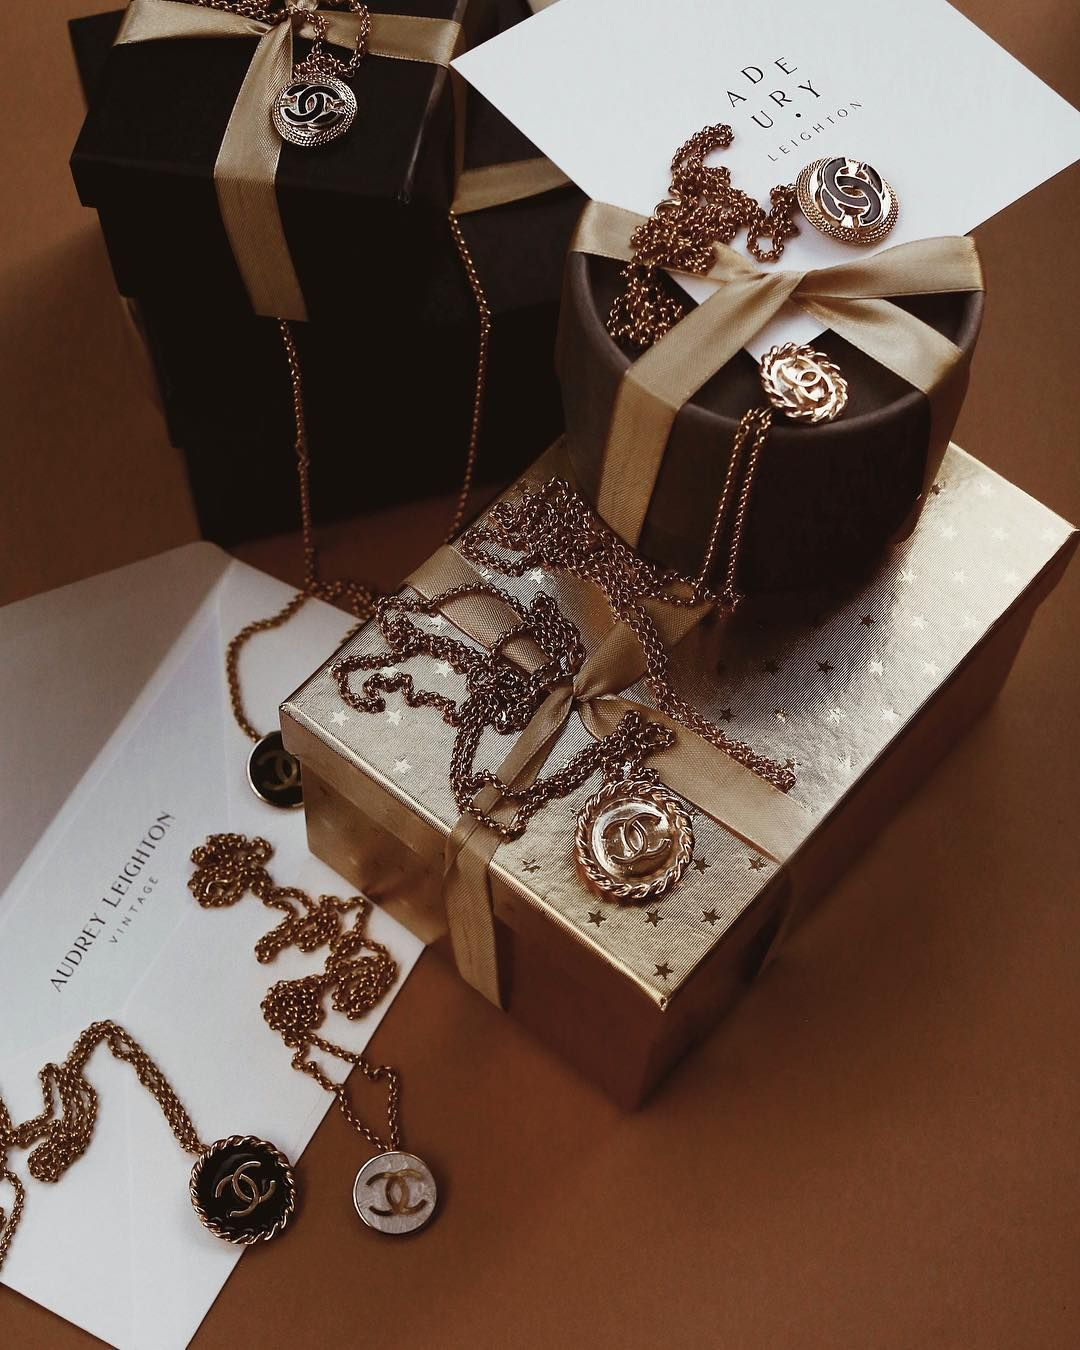 Chanel Neclaces By Audrey Leighton Vintage Brown Aesthetic Special Gifts Gold Aesthetic